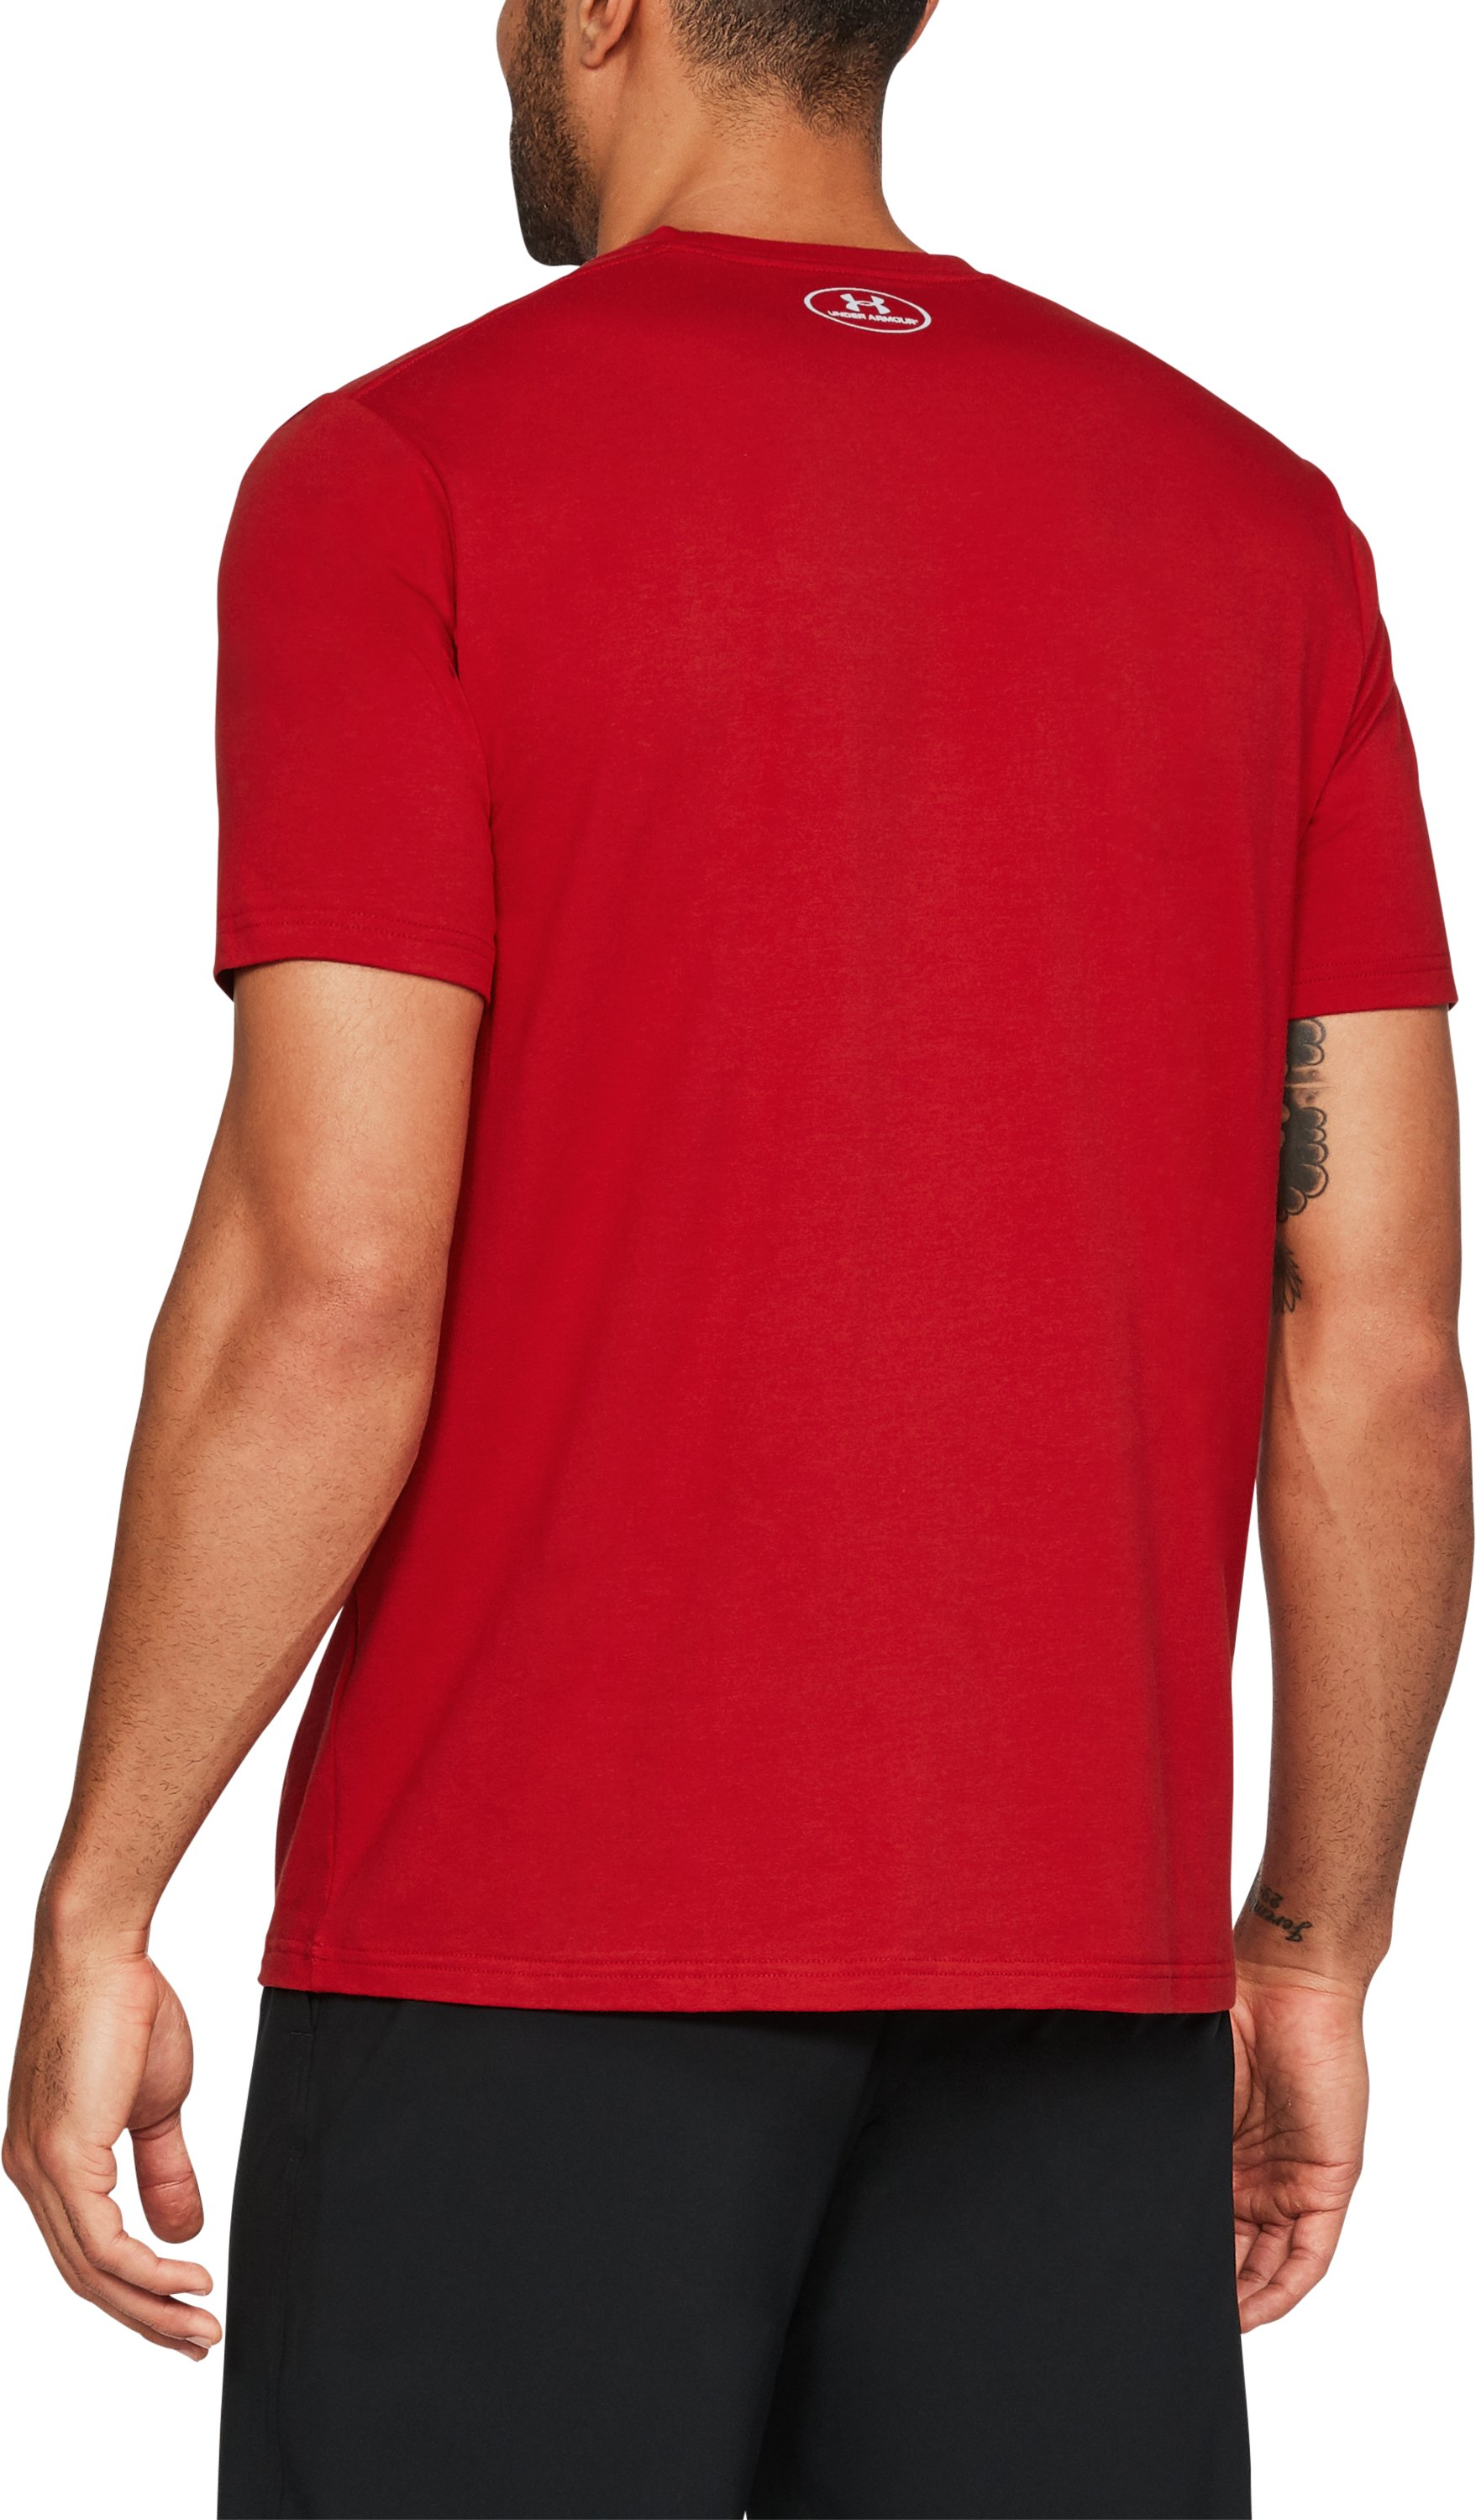 Men's Wisconsin CR 100 Charged Cotton® T-Shirt, Flawless,